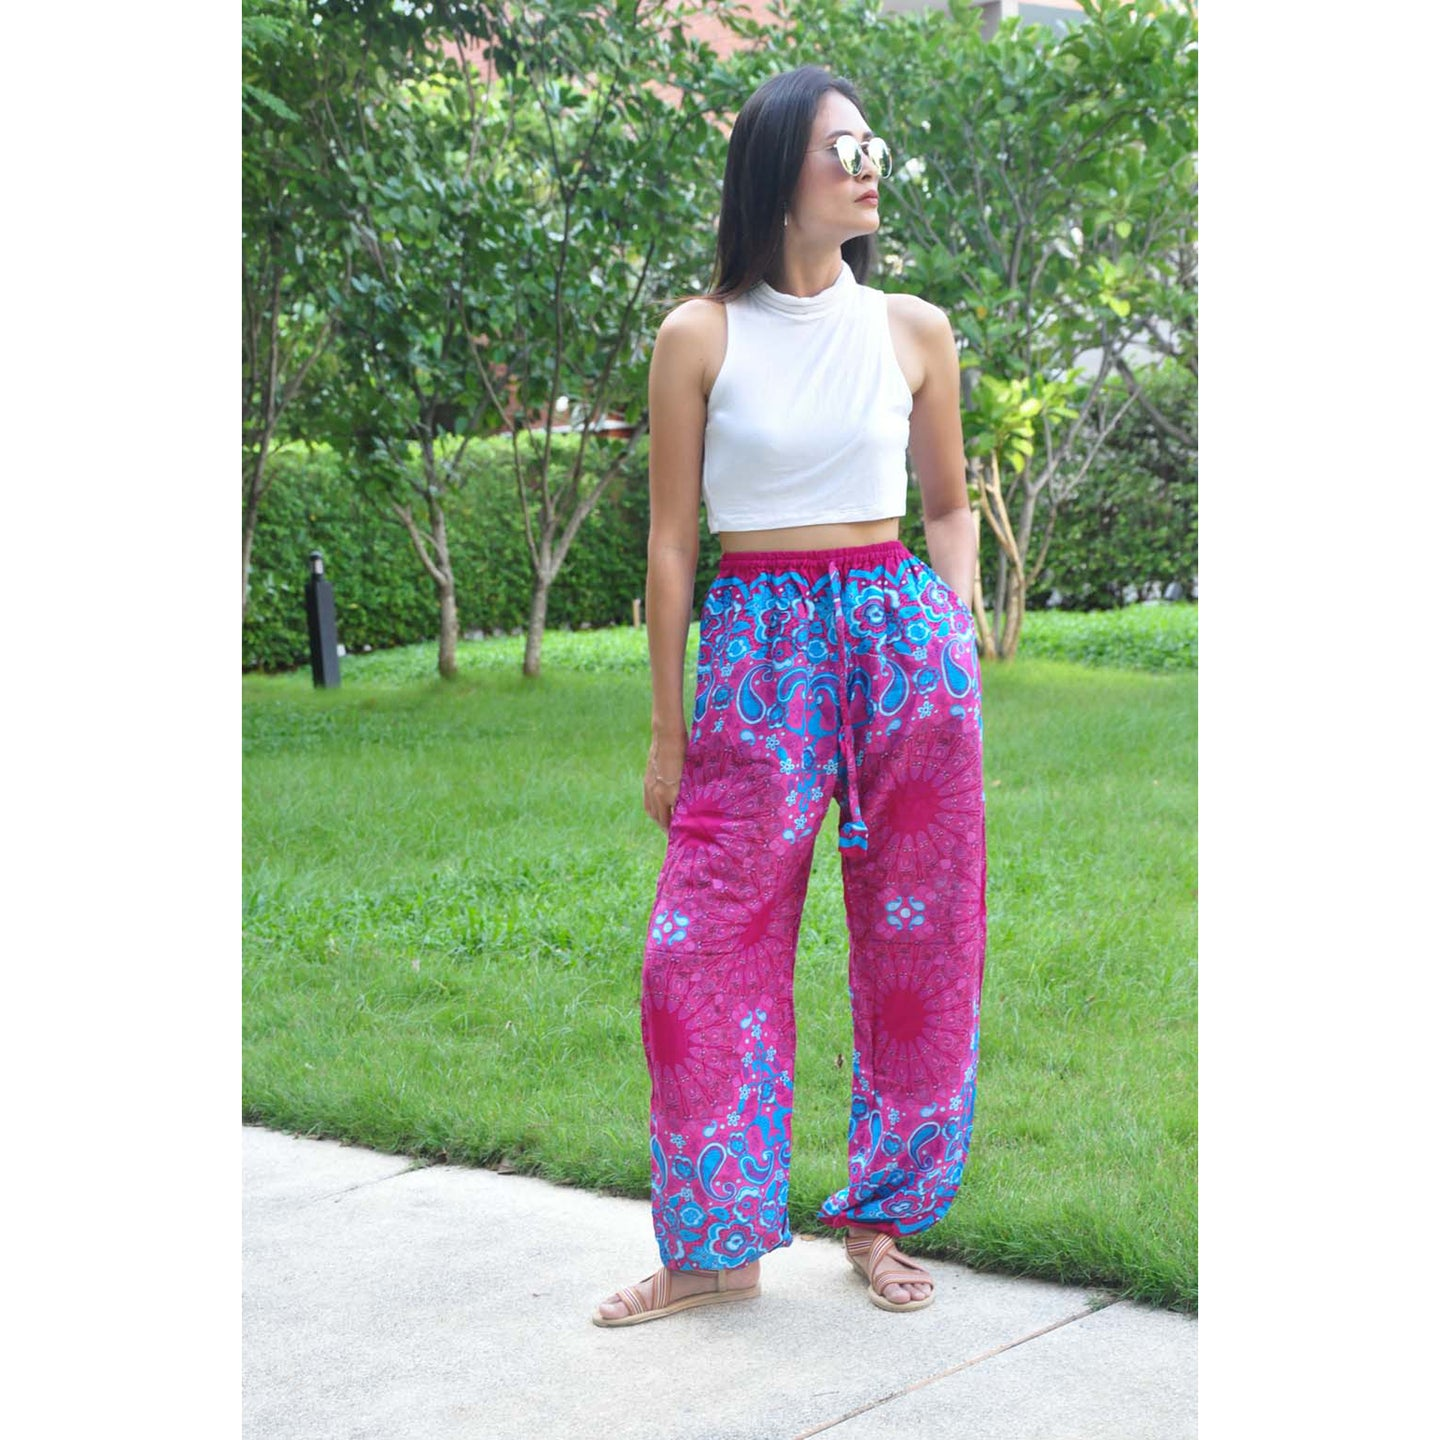 Sunflower Unisex Drawstring Genie Pants in Pink PP0110 020054 06